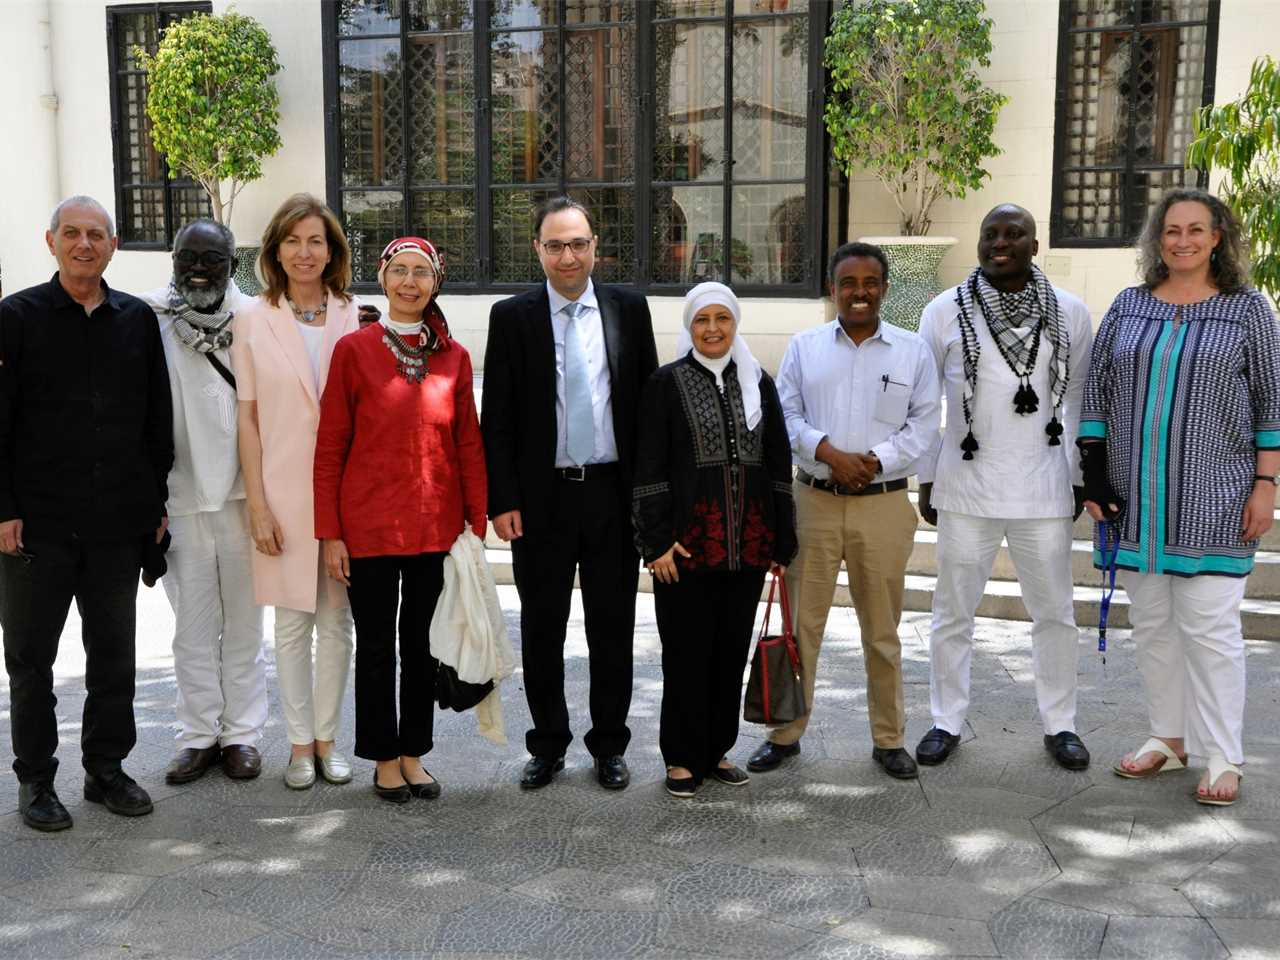 LafargeHolcim Awards jury meeting for Middle East Africa in Cairo, May 2017